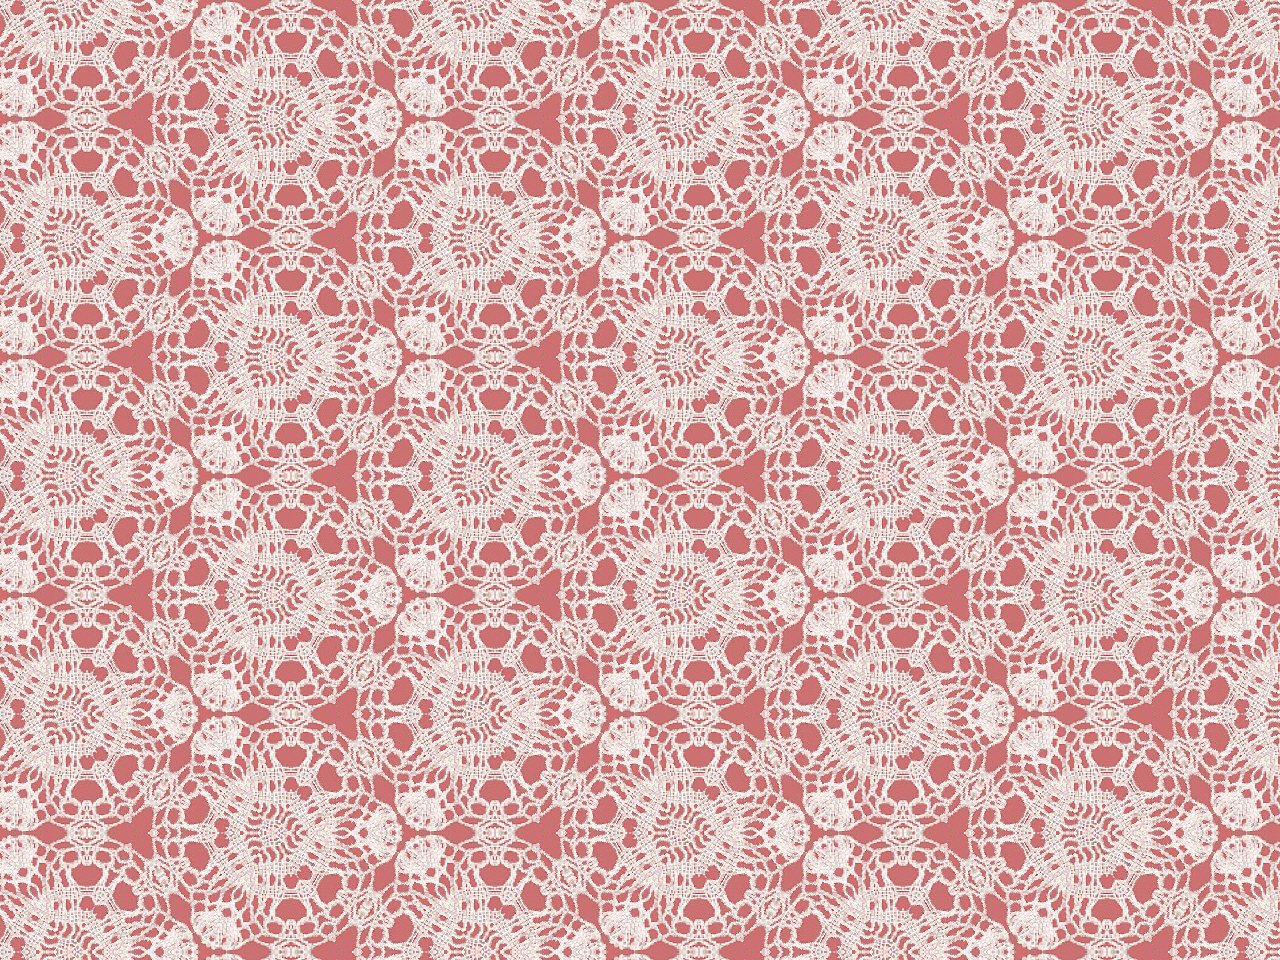 artbyjean images of lace off white lace over old rose